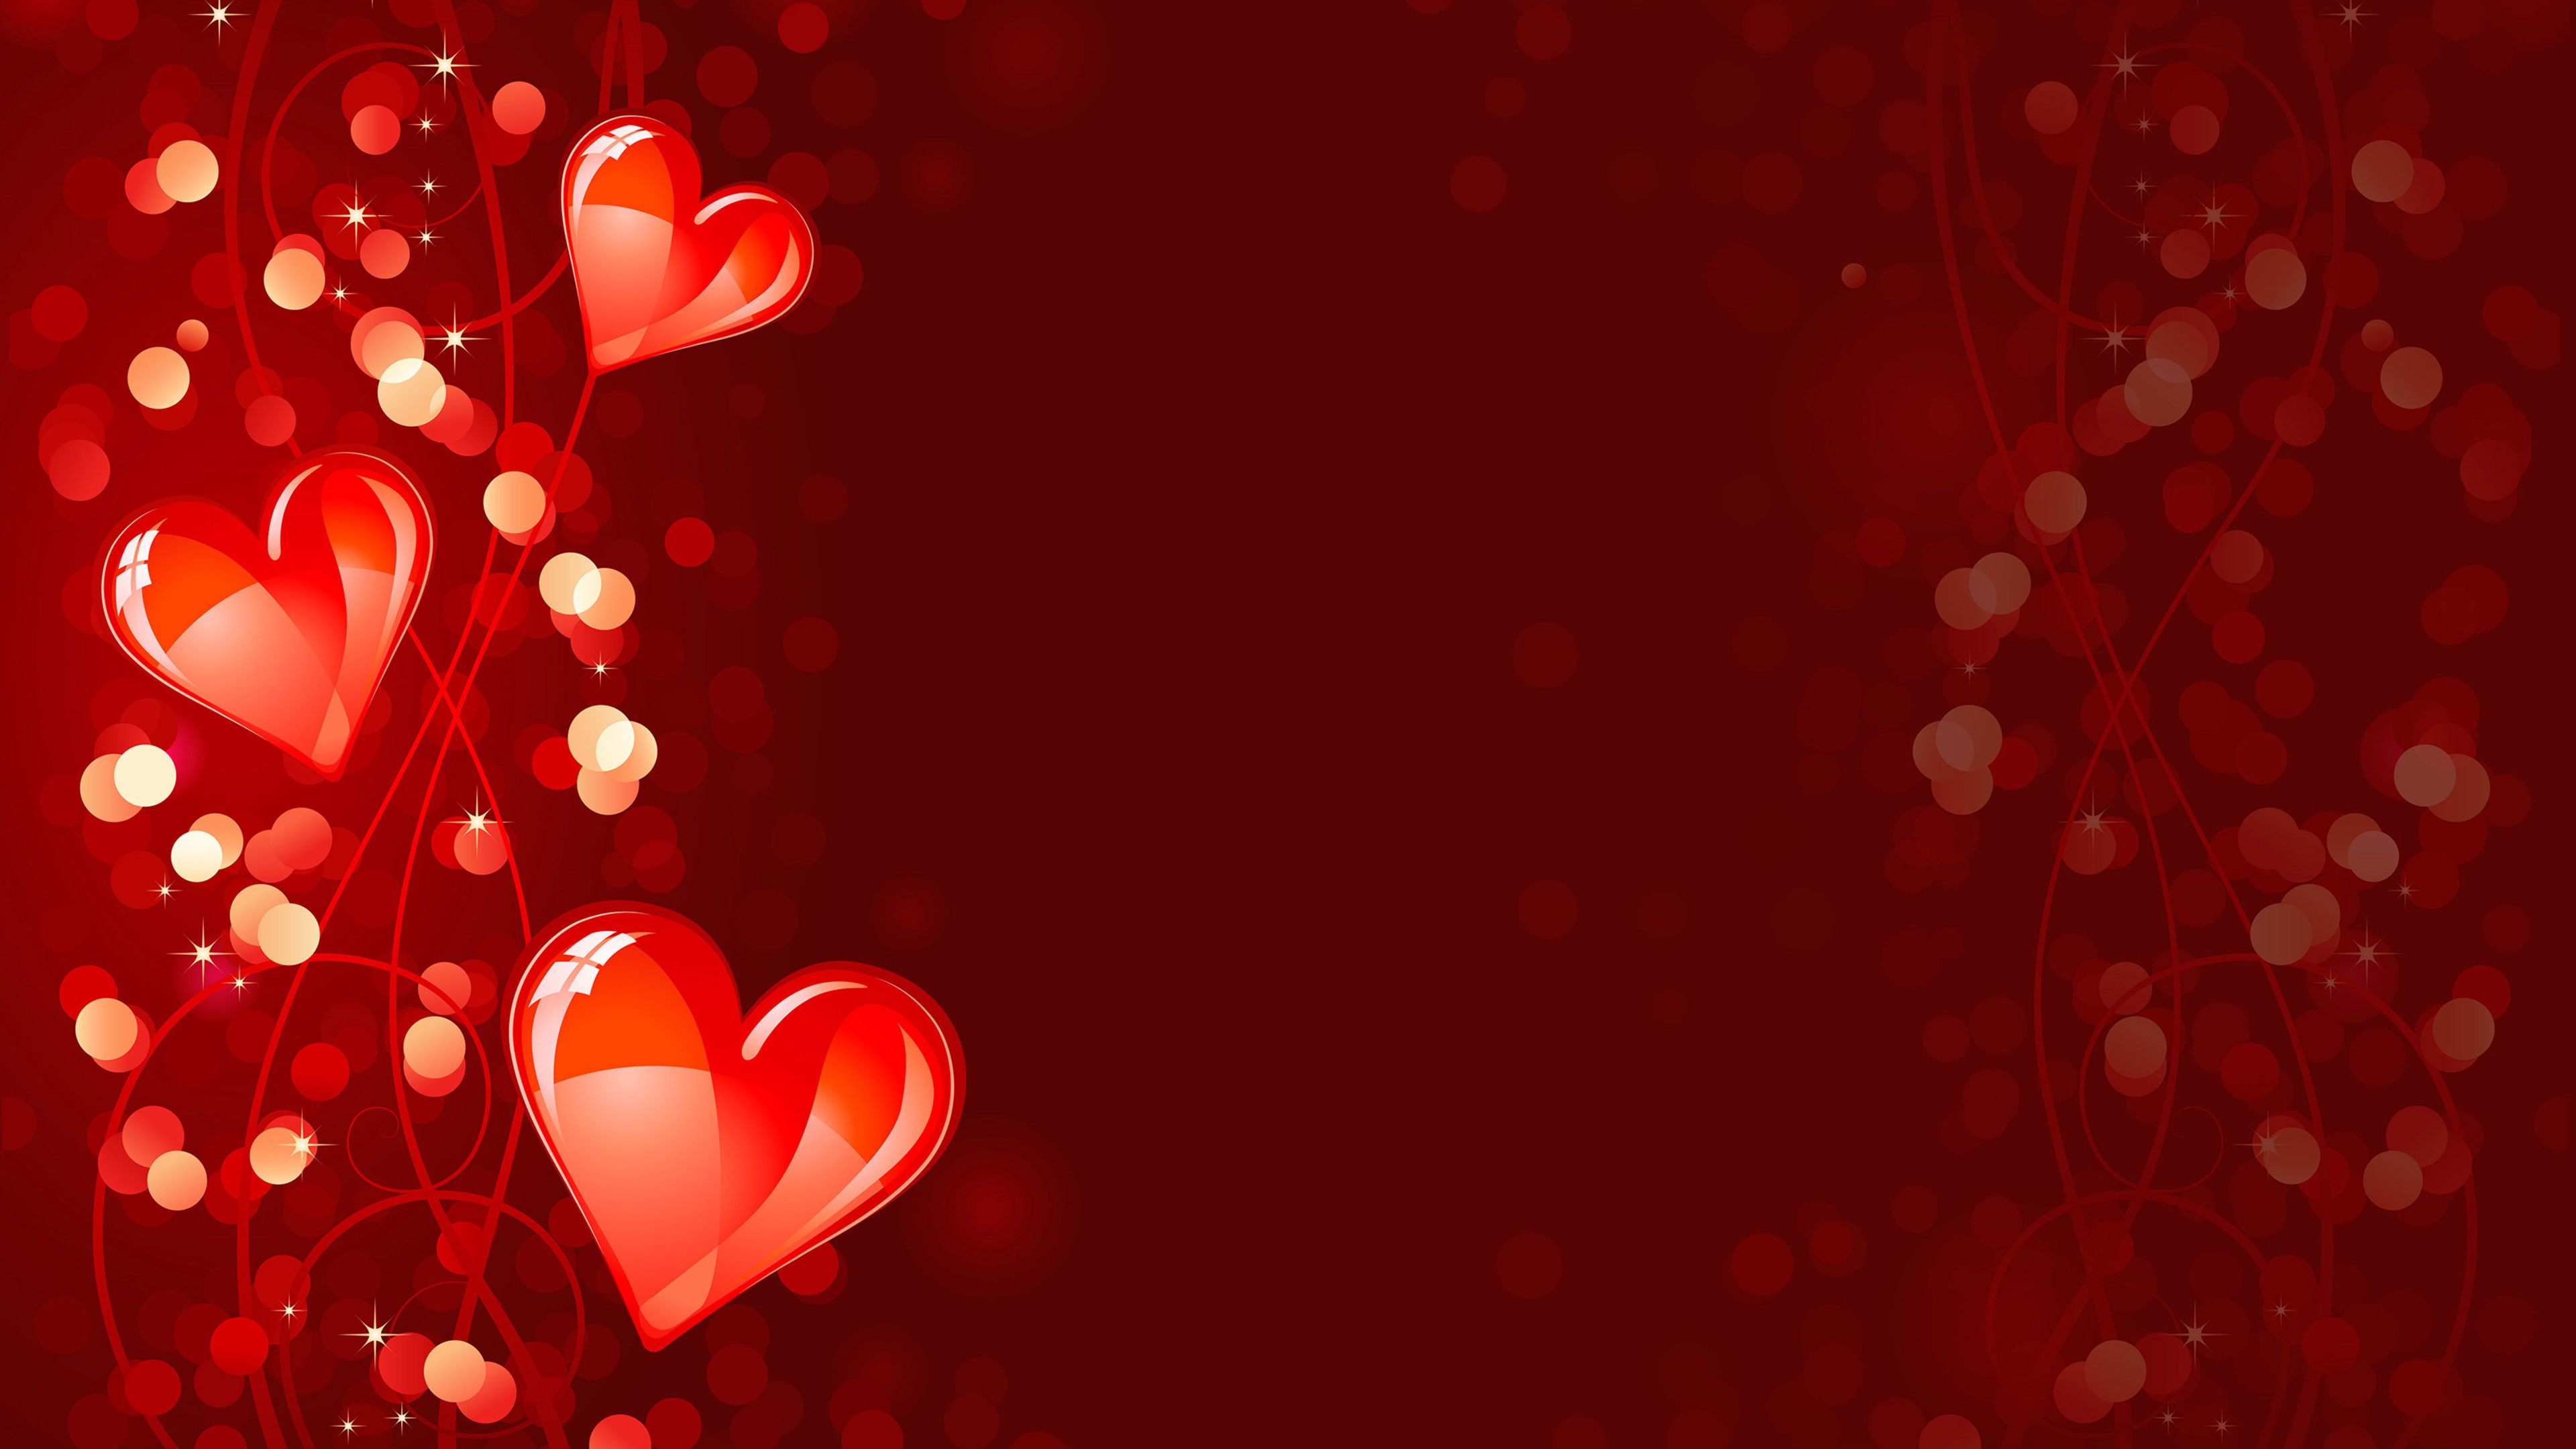 Love Wallpaper Full Hd High Quality : 4k Love Wallpapers High Quality Download Free